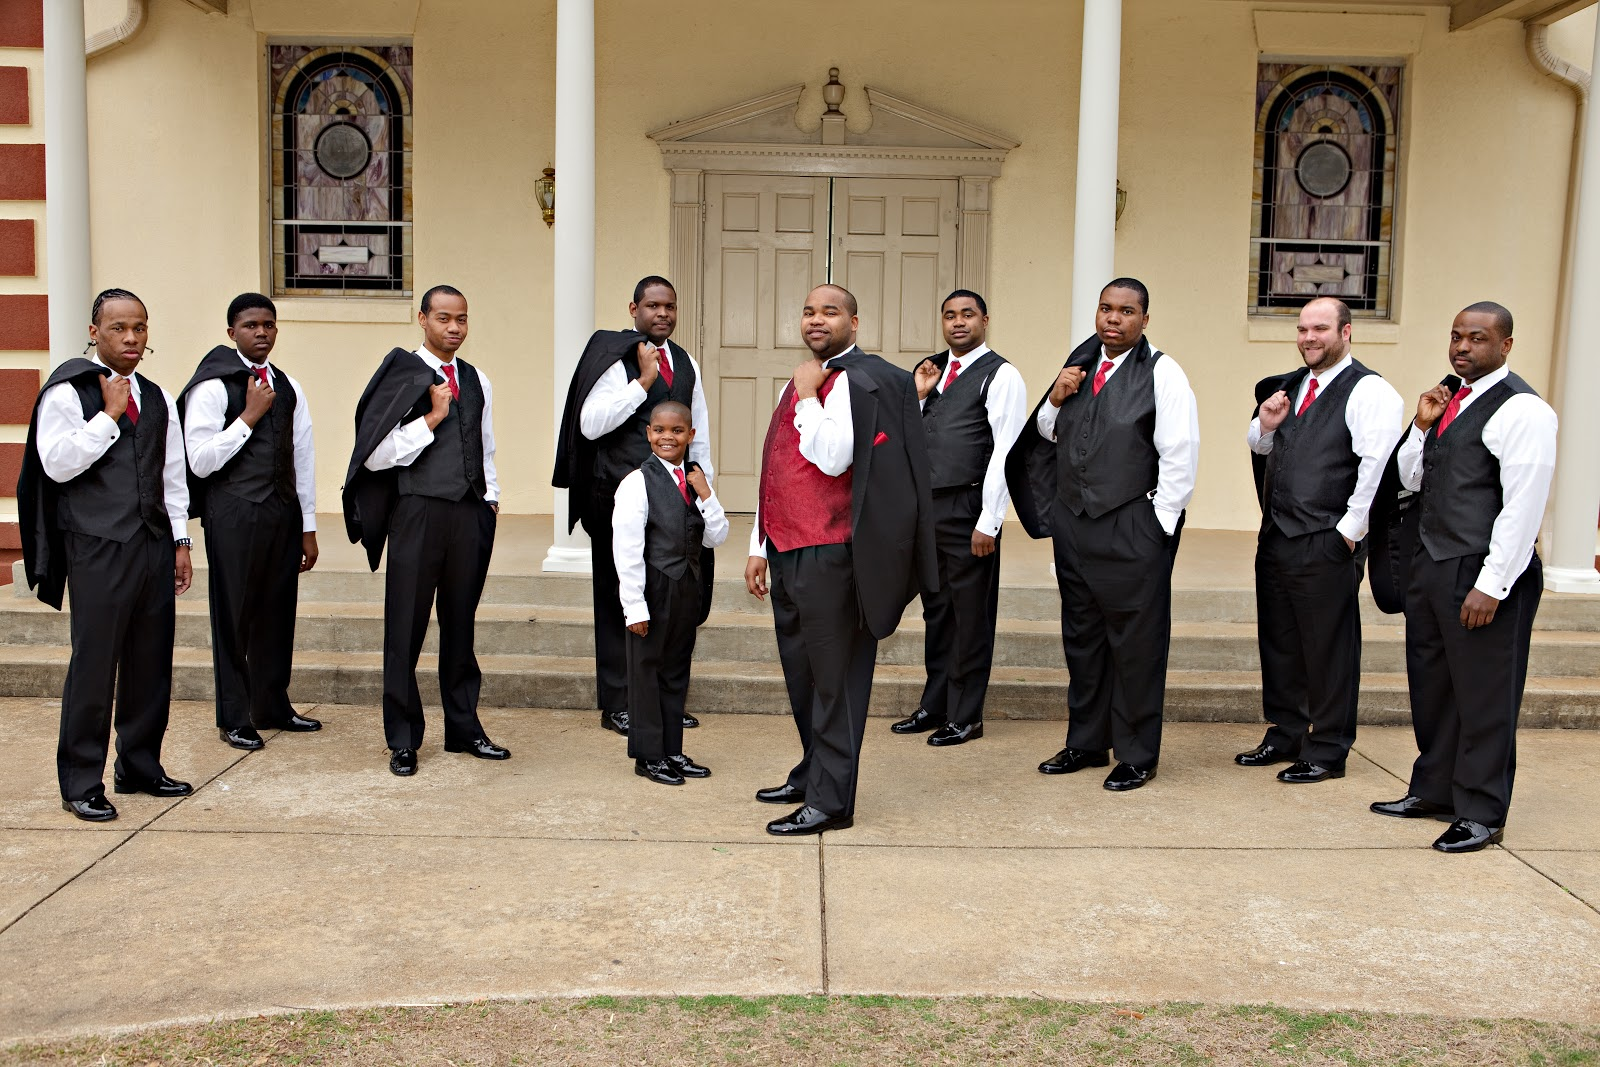 Groomsmen with groom outside church